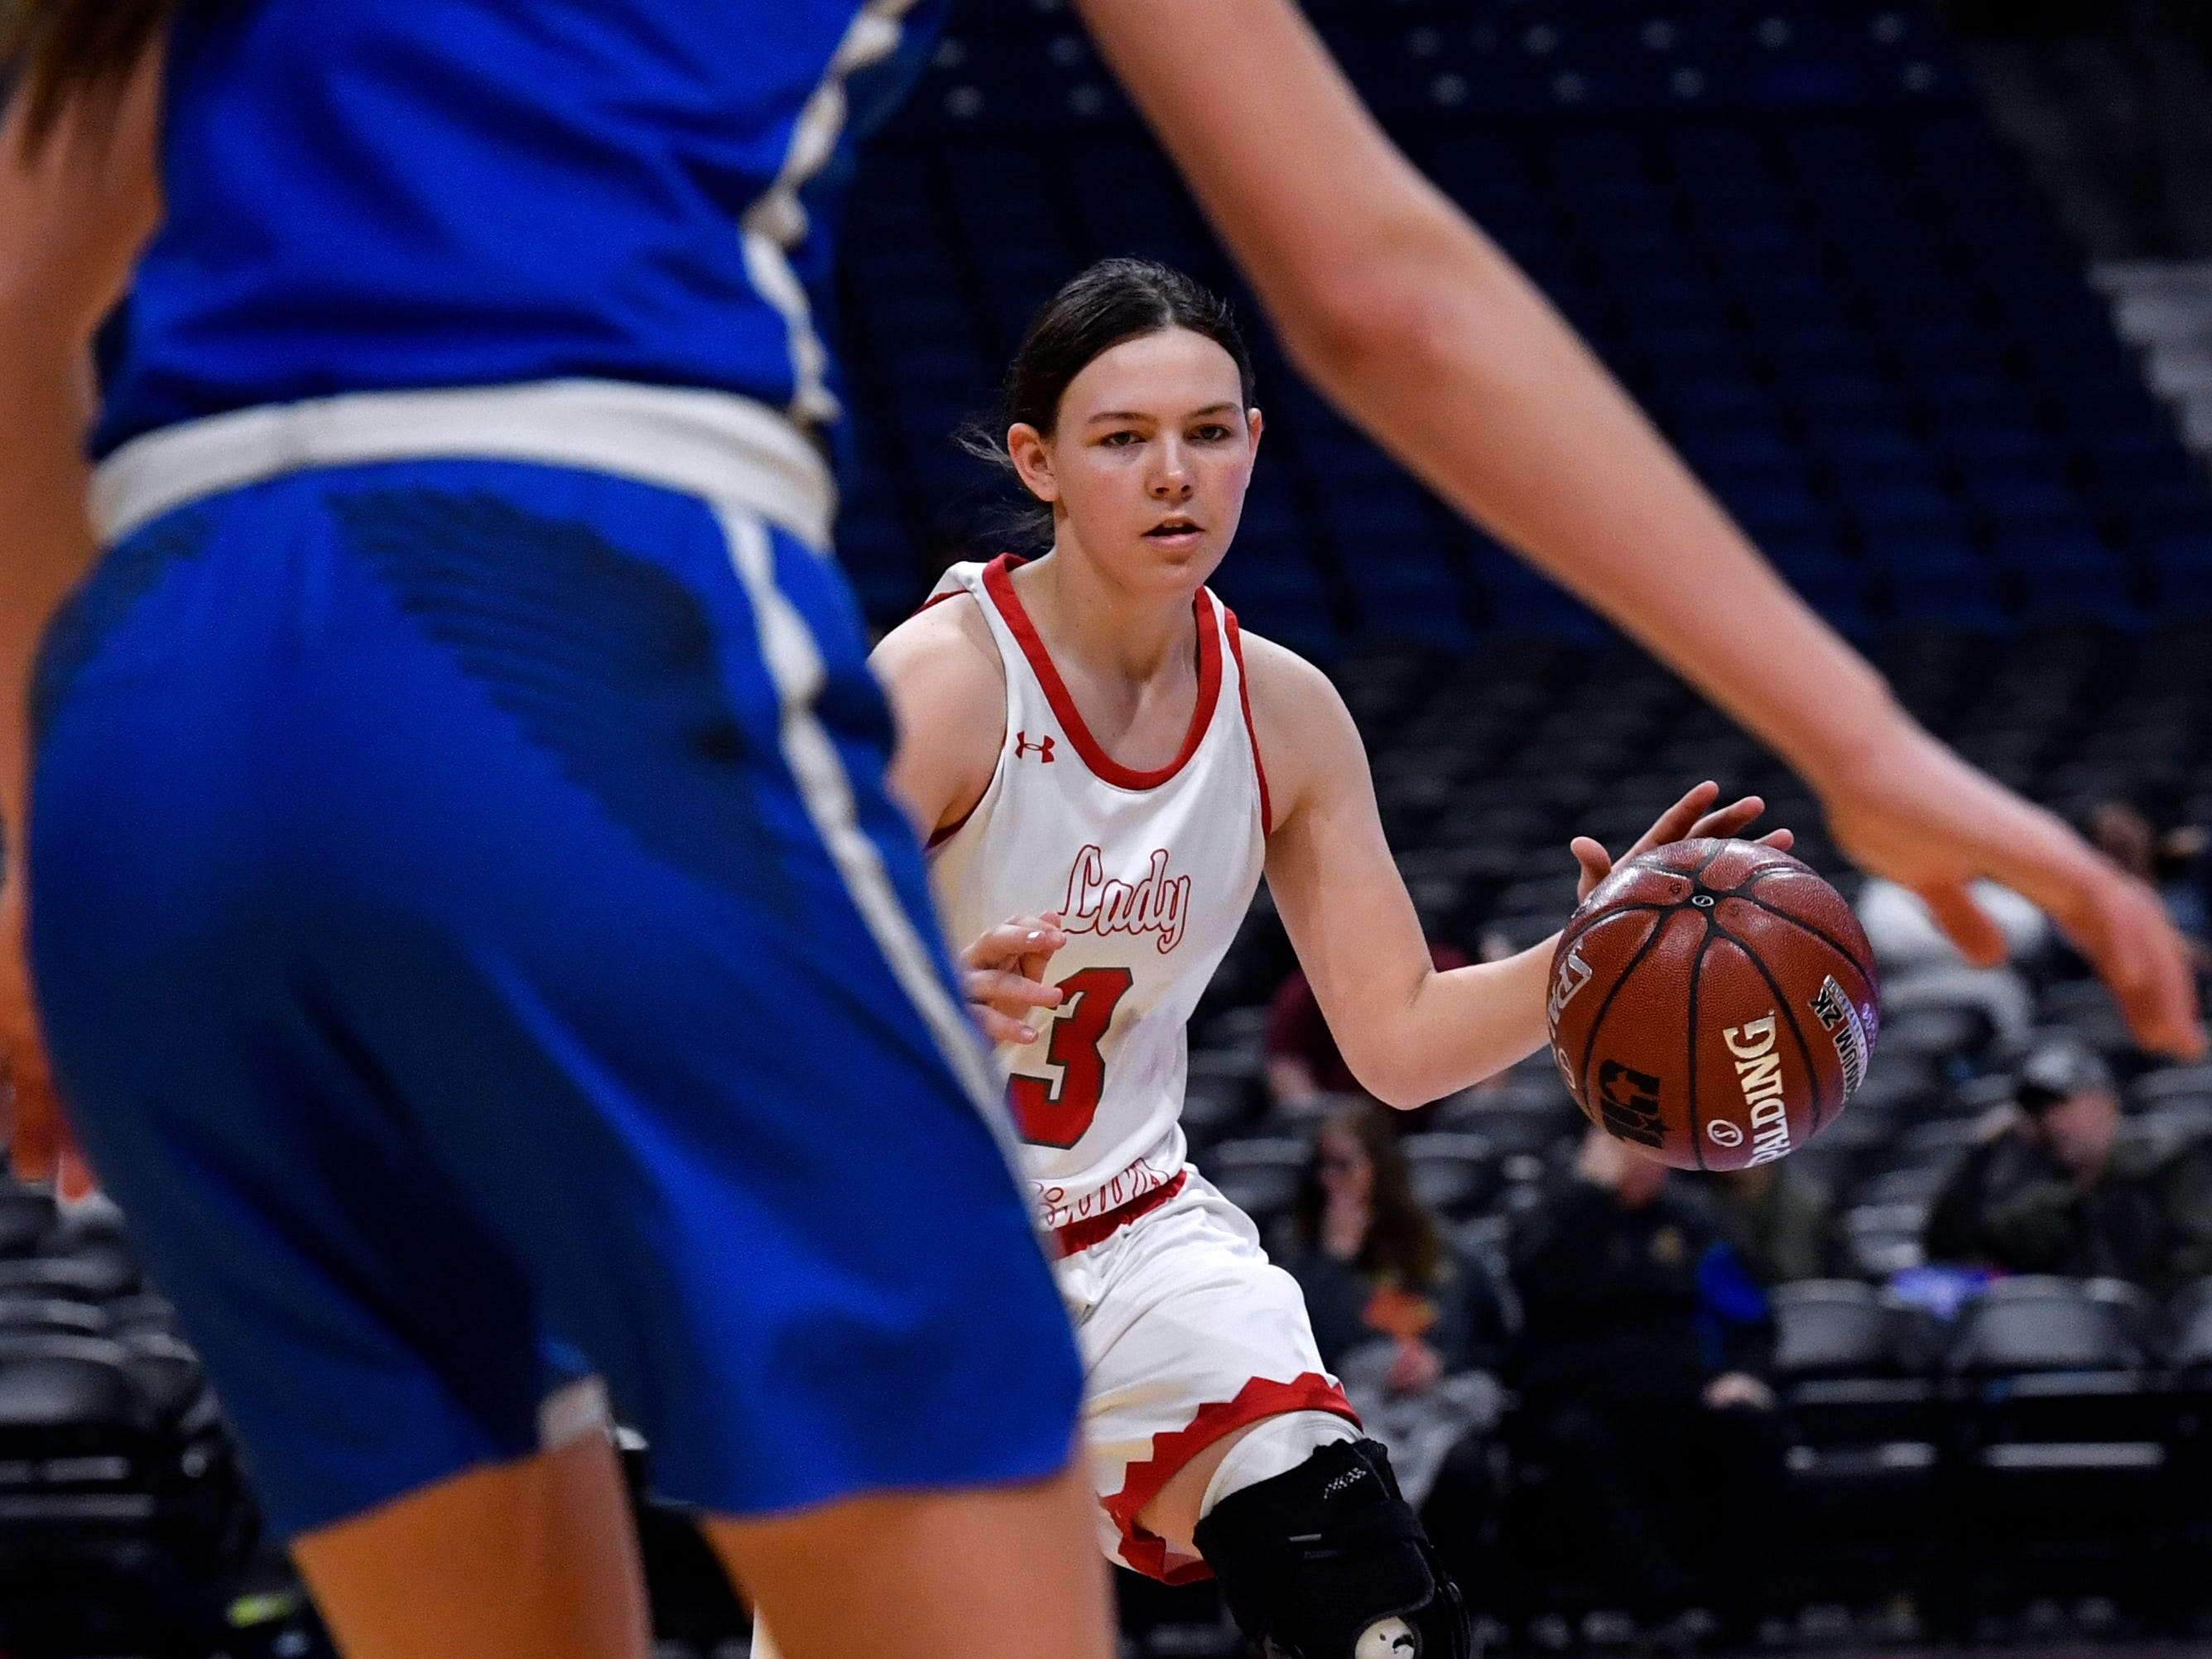 Hermleigh guard Brittany Smith approaches the basket and Nazareth guard Blakely Gerber during Thursday's UIL Class 1A girls state basketball semifinal at the Alamodome in San Antonio Feb. 28, 2019.